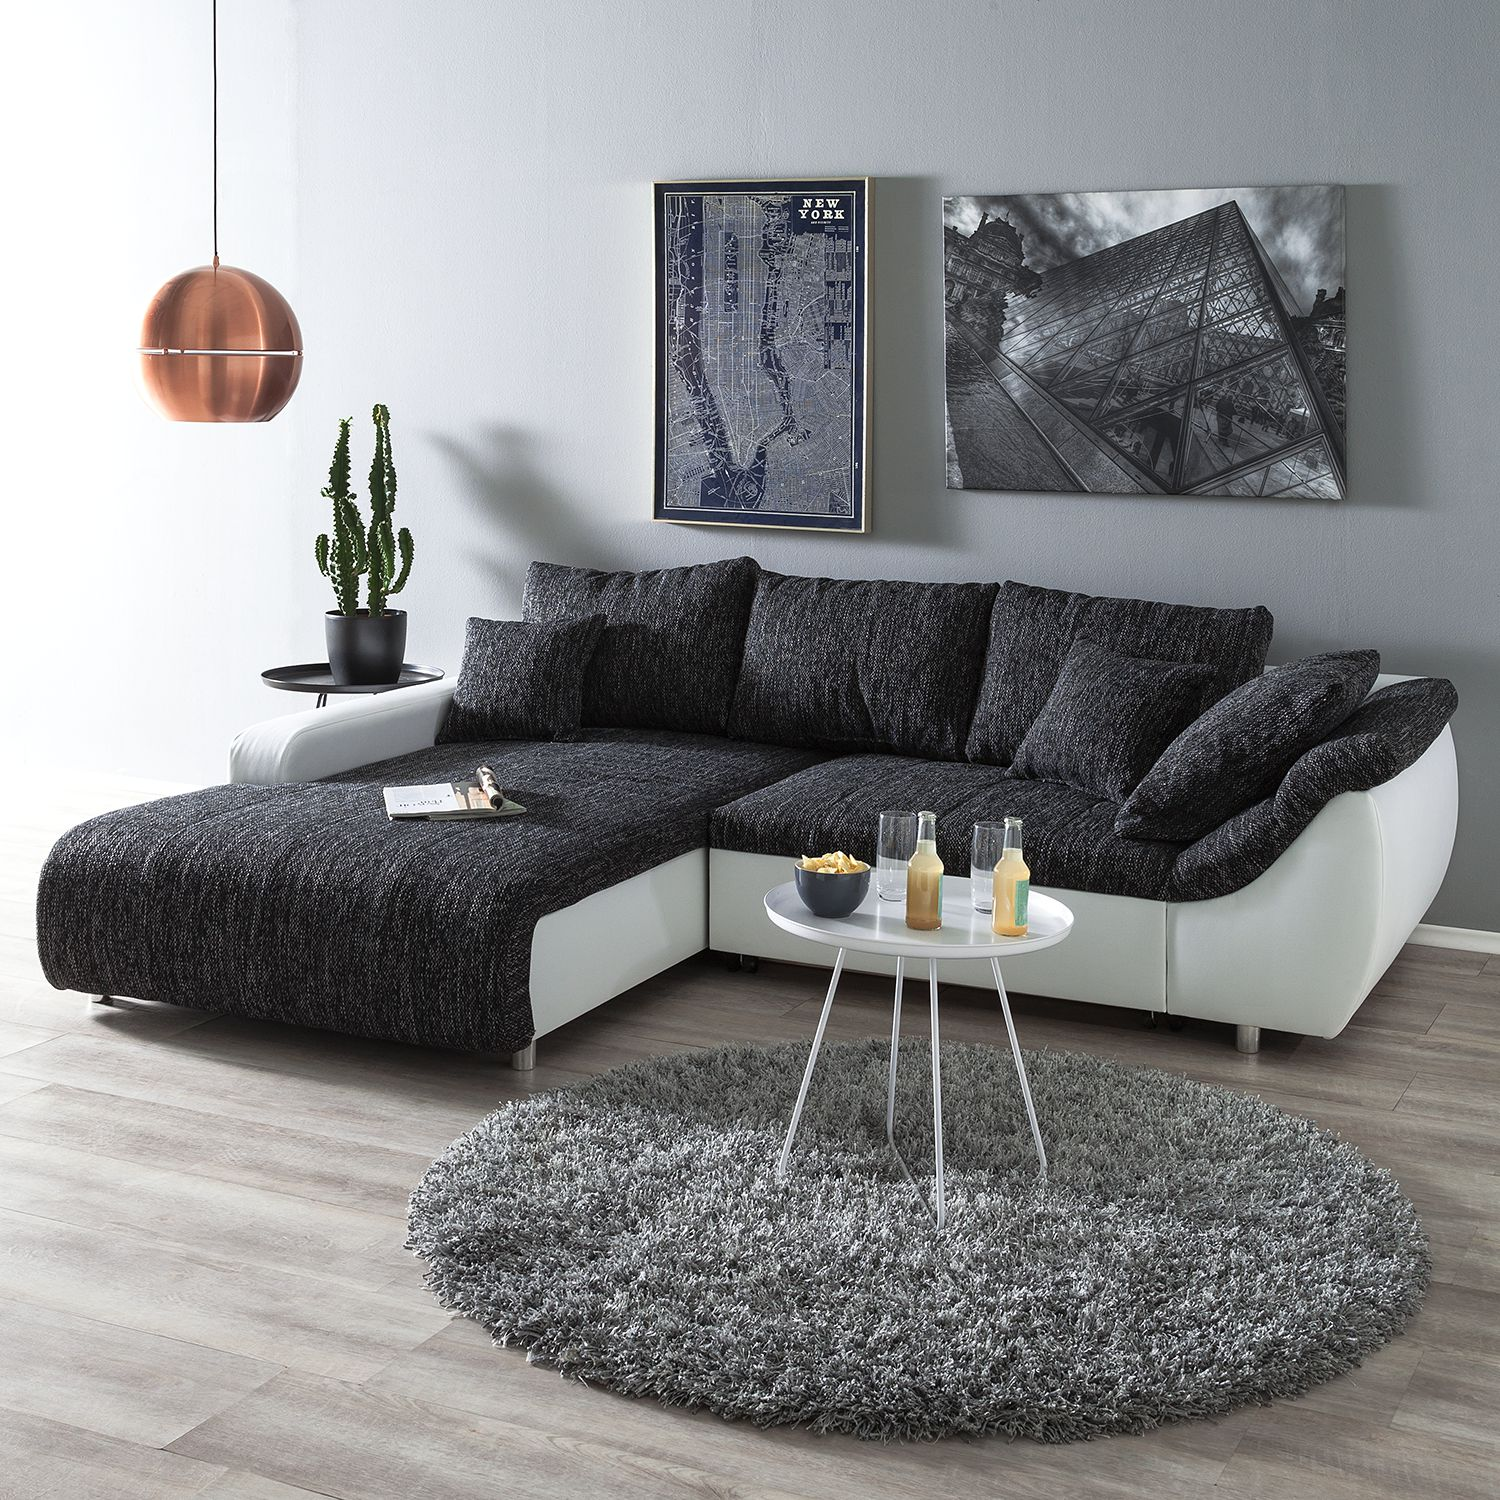 10 sparen ecksofa mable in grau wei nur 899 99. Black Bedroom Furniture Sets. Home Design Ideas